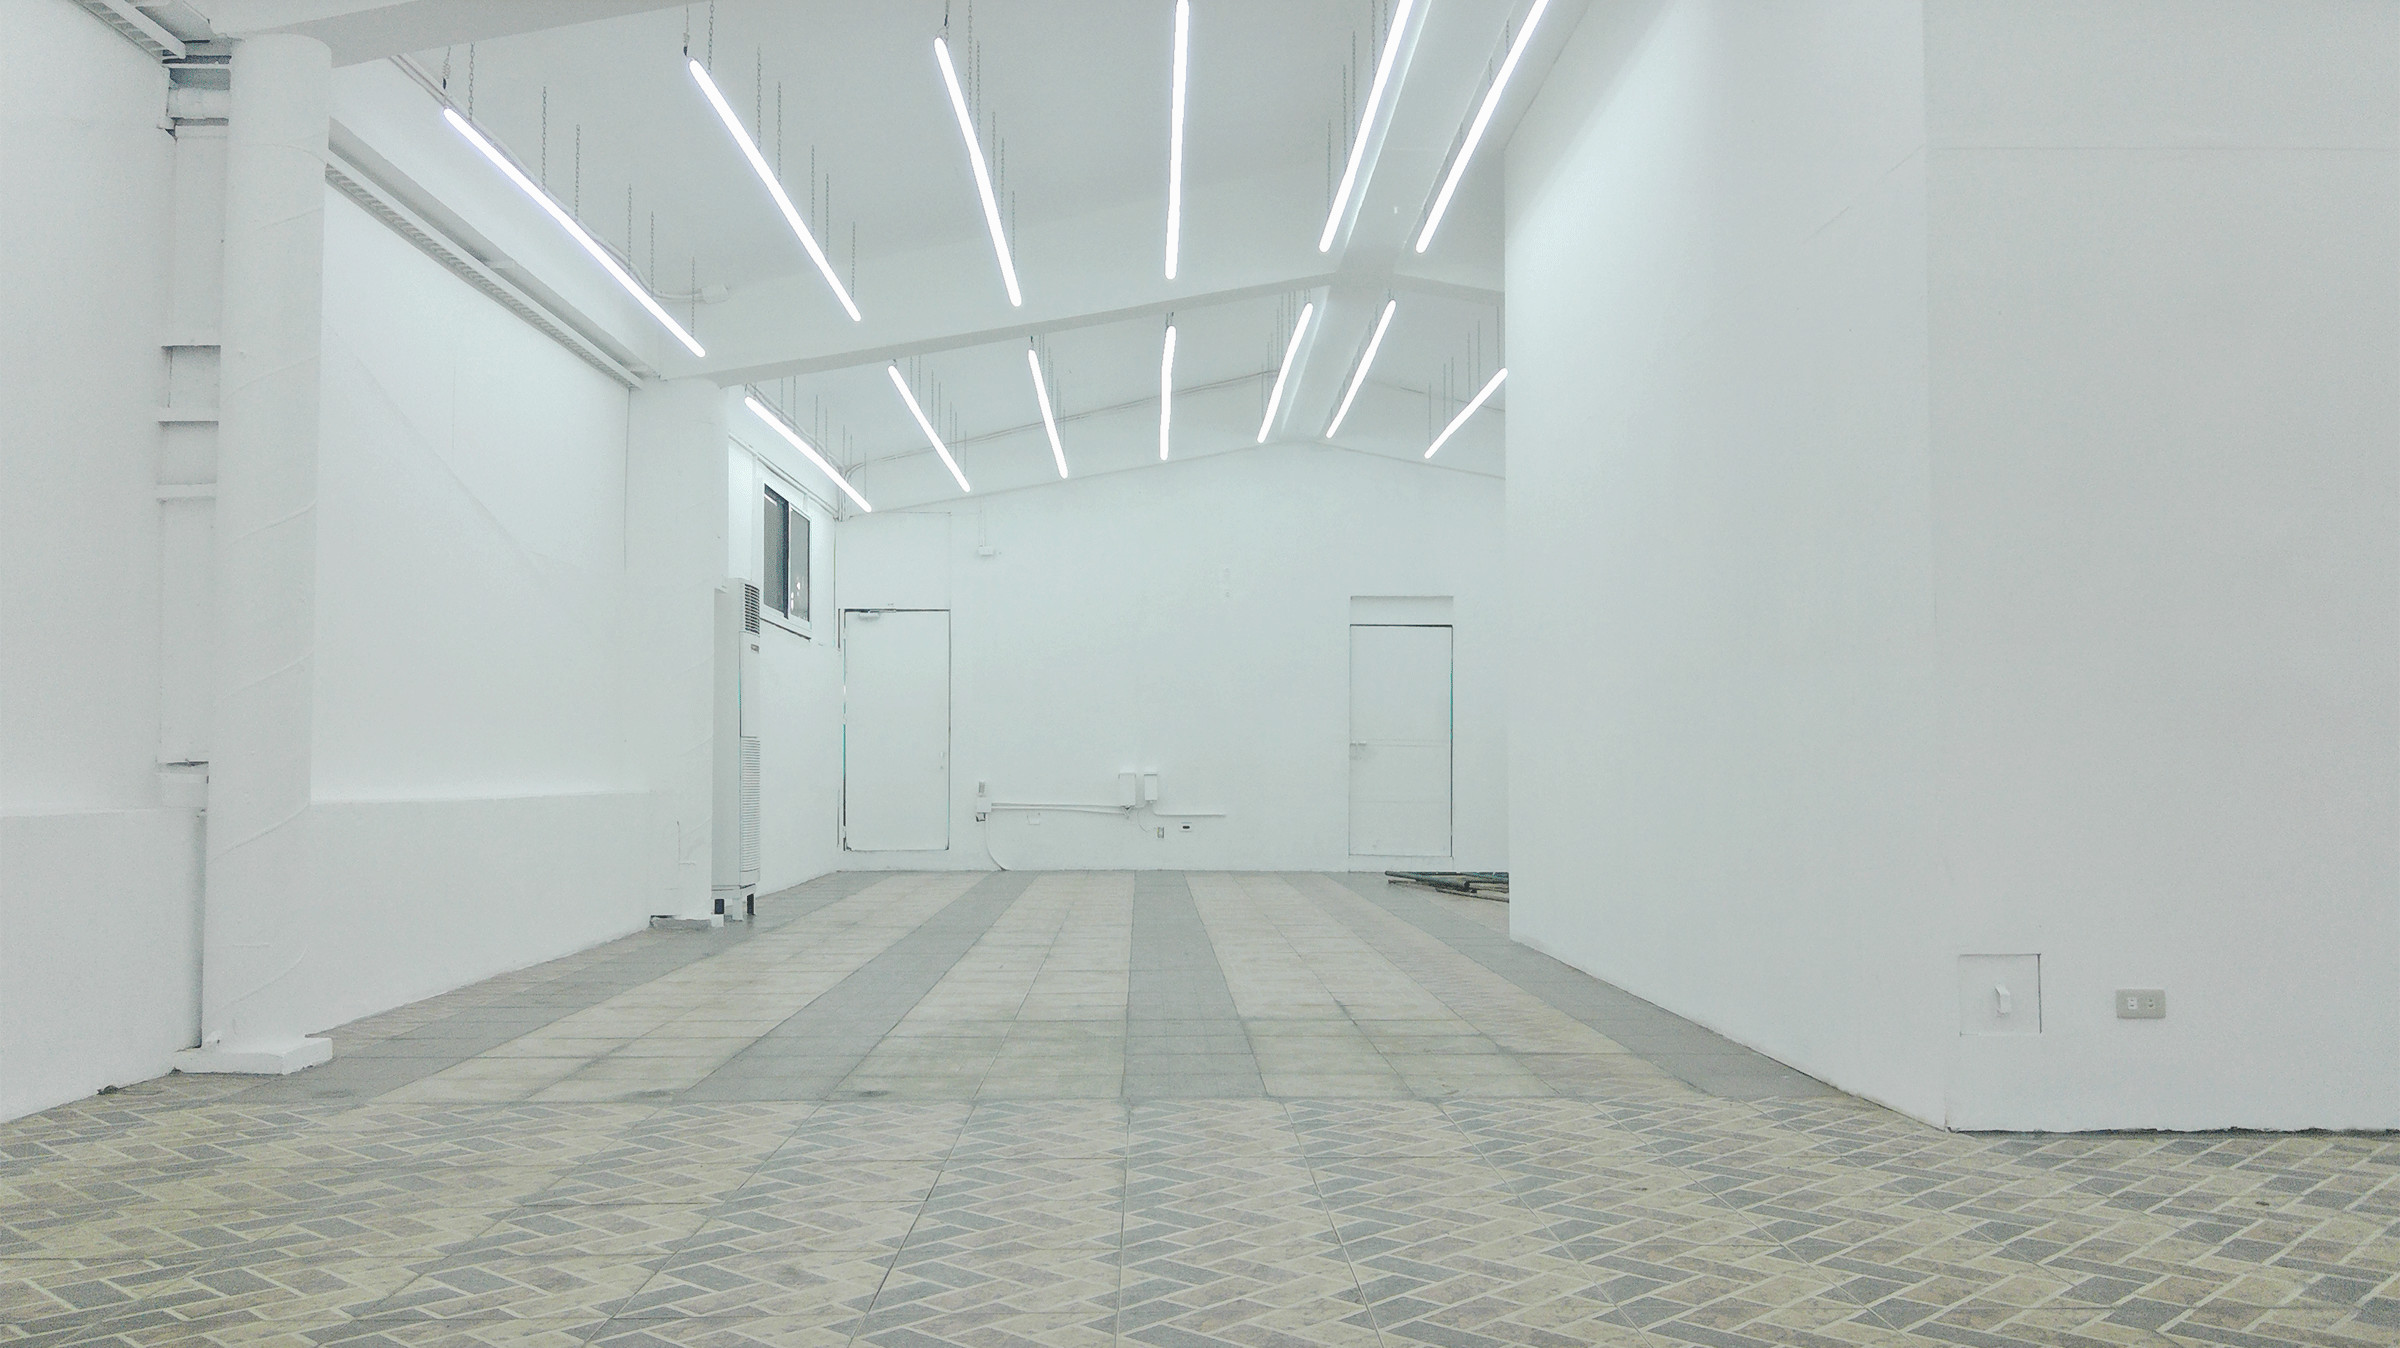 About DISTRICT GALLERY